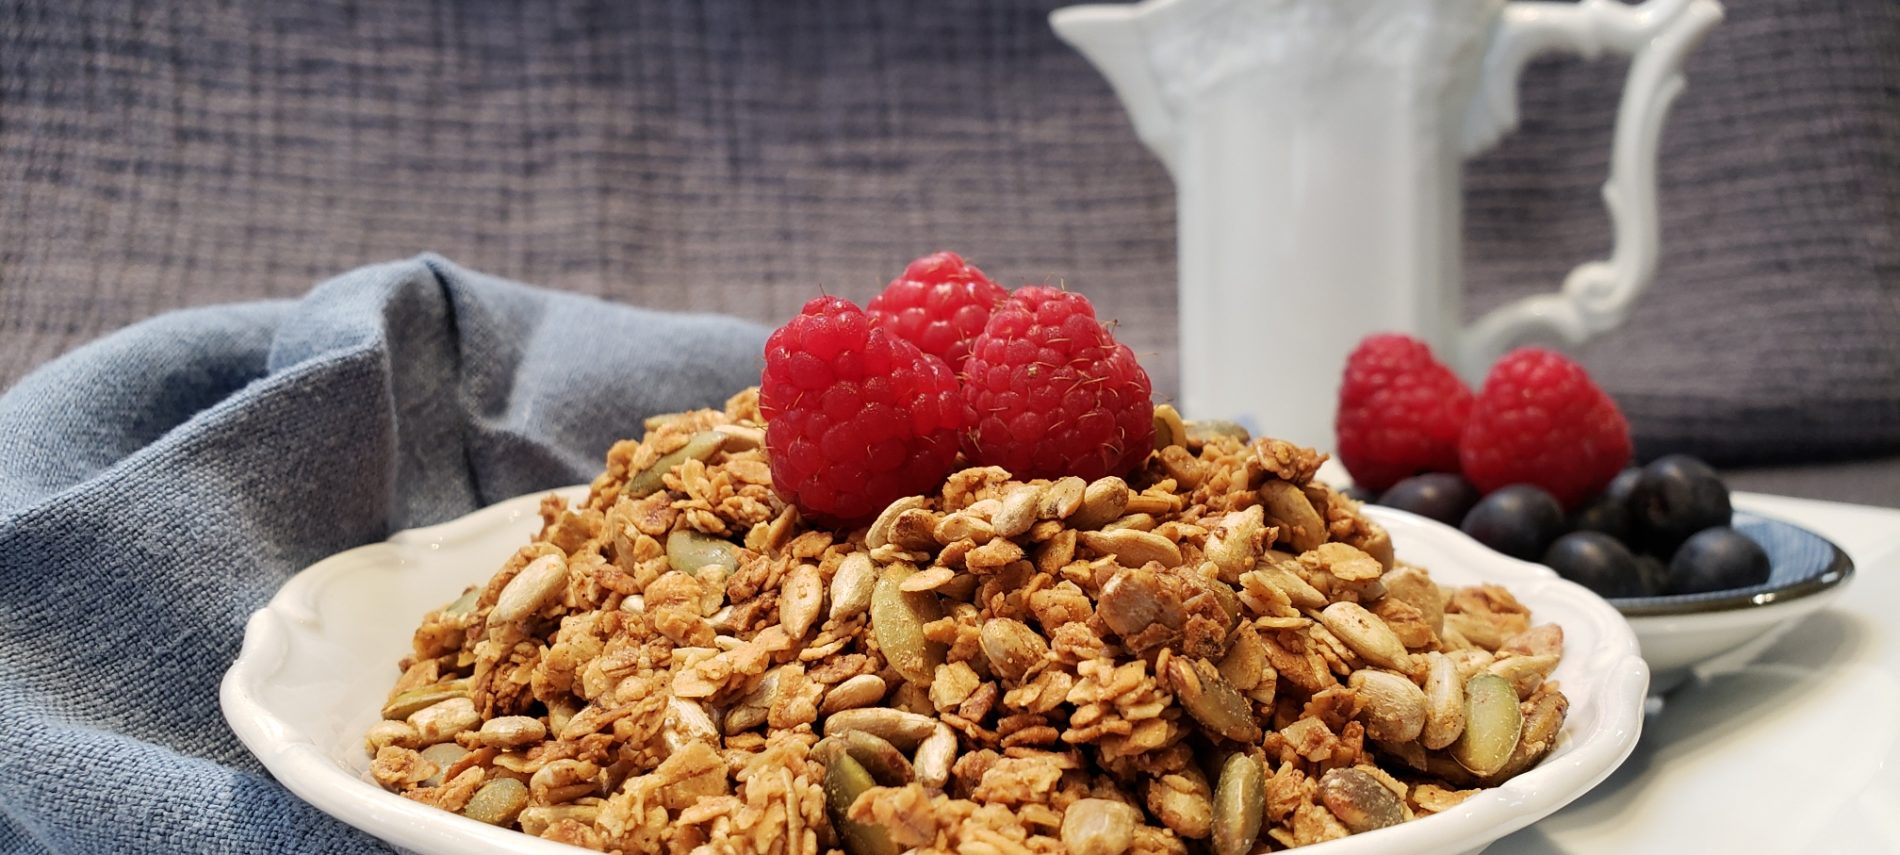 A bowl of granola with berries in a bowl on a napkin